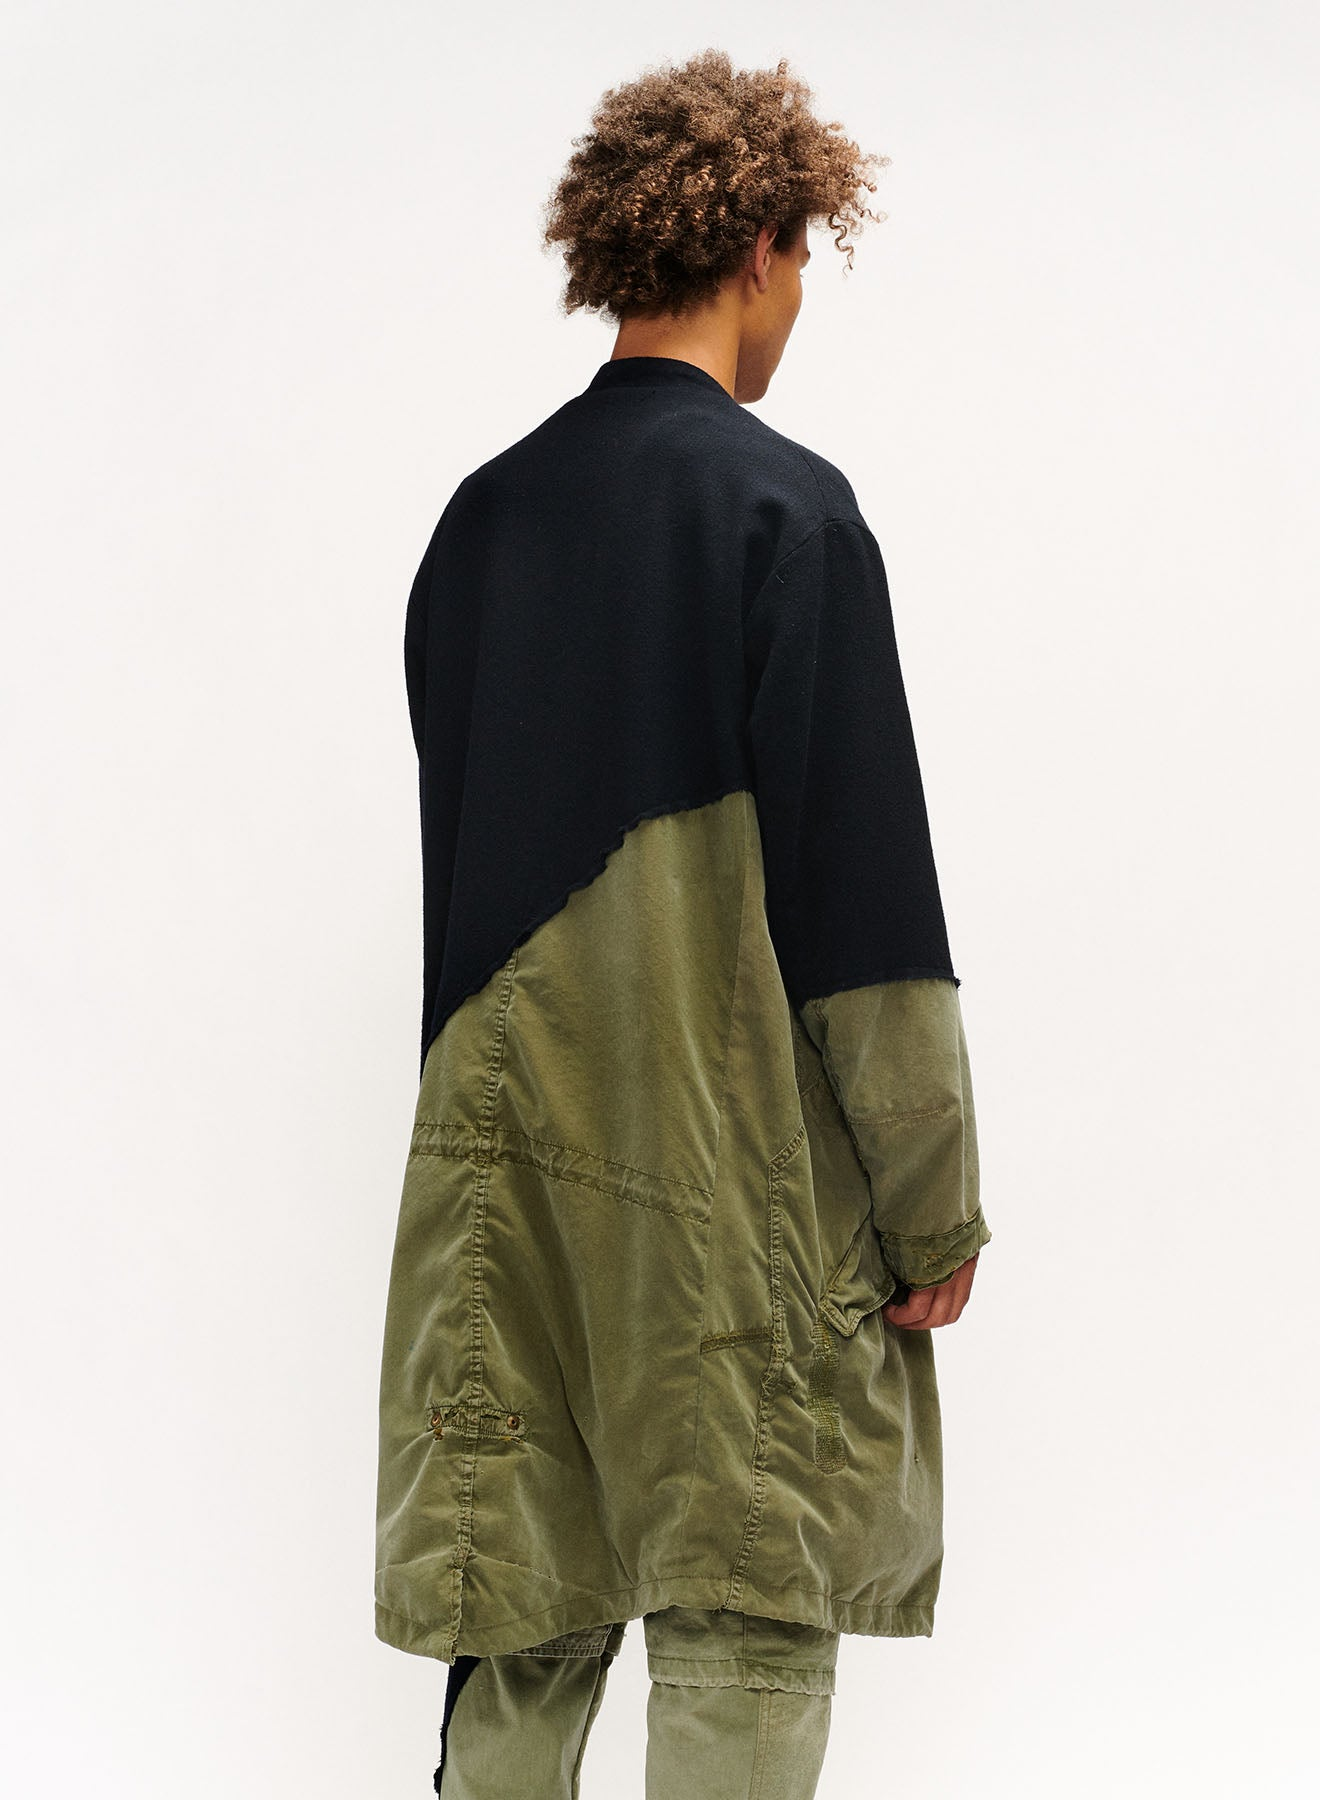 50-50 OFFICER / ARMY FISHTAIL PARKA